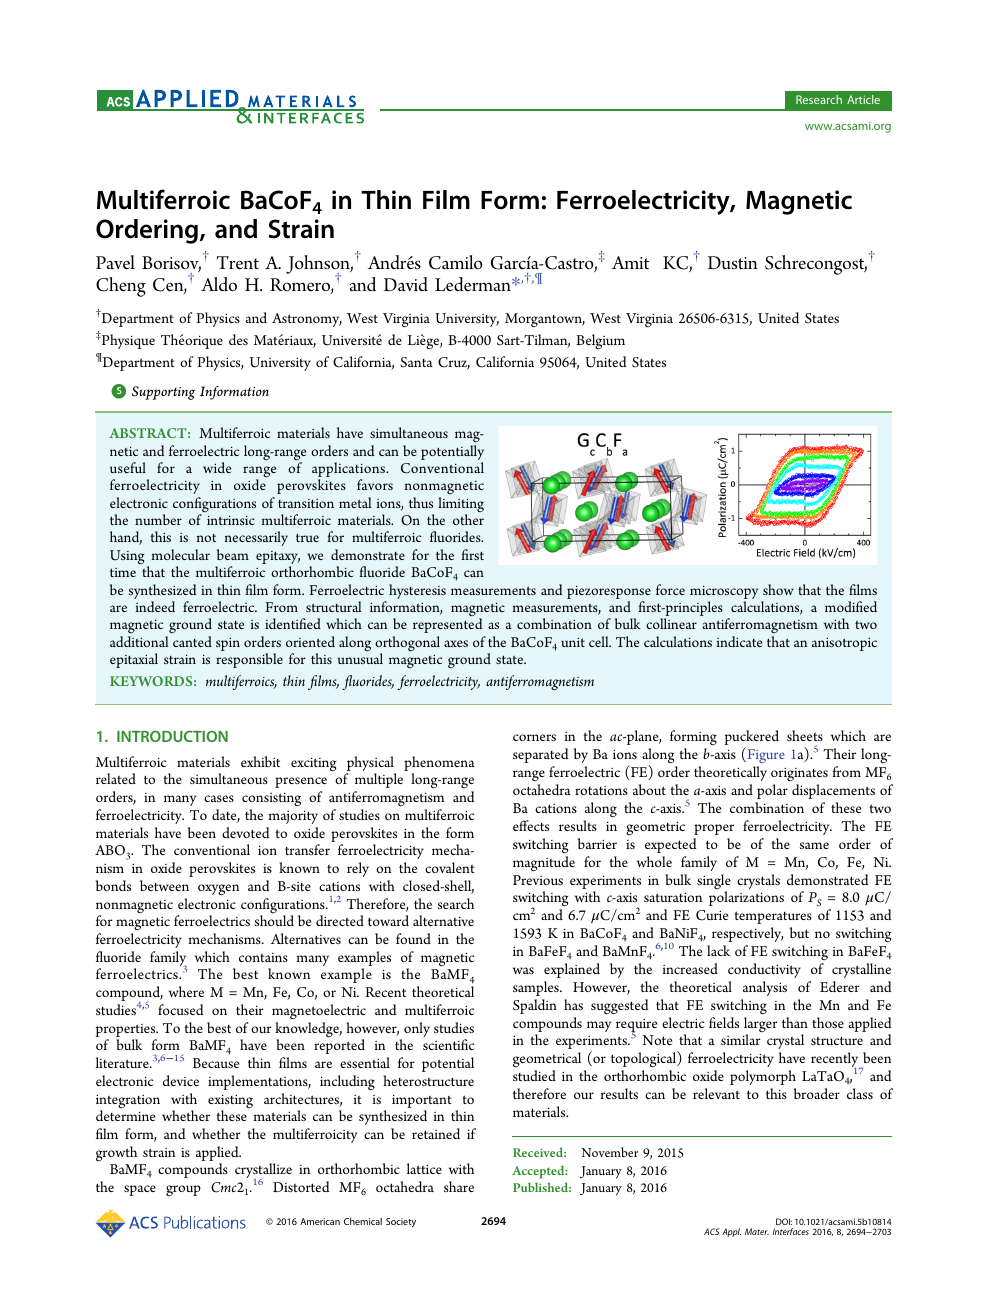 Multiferroic BaCoF 4 in Thin Film Form: Ferroelectricity